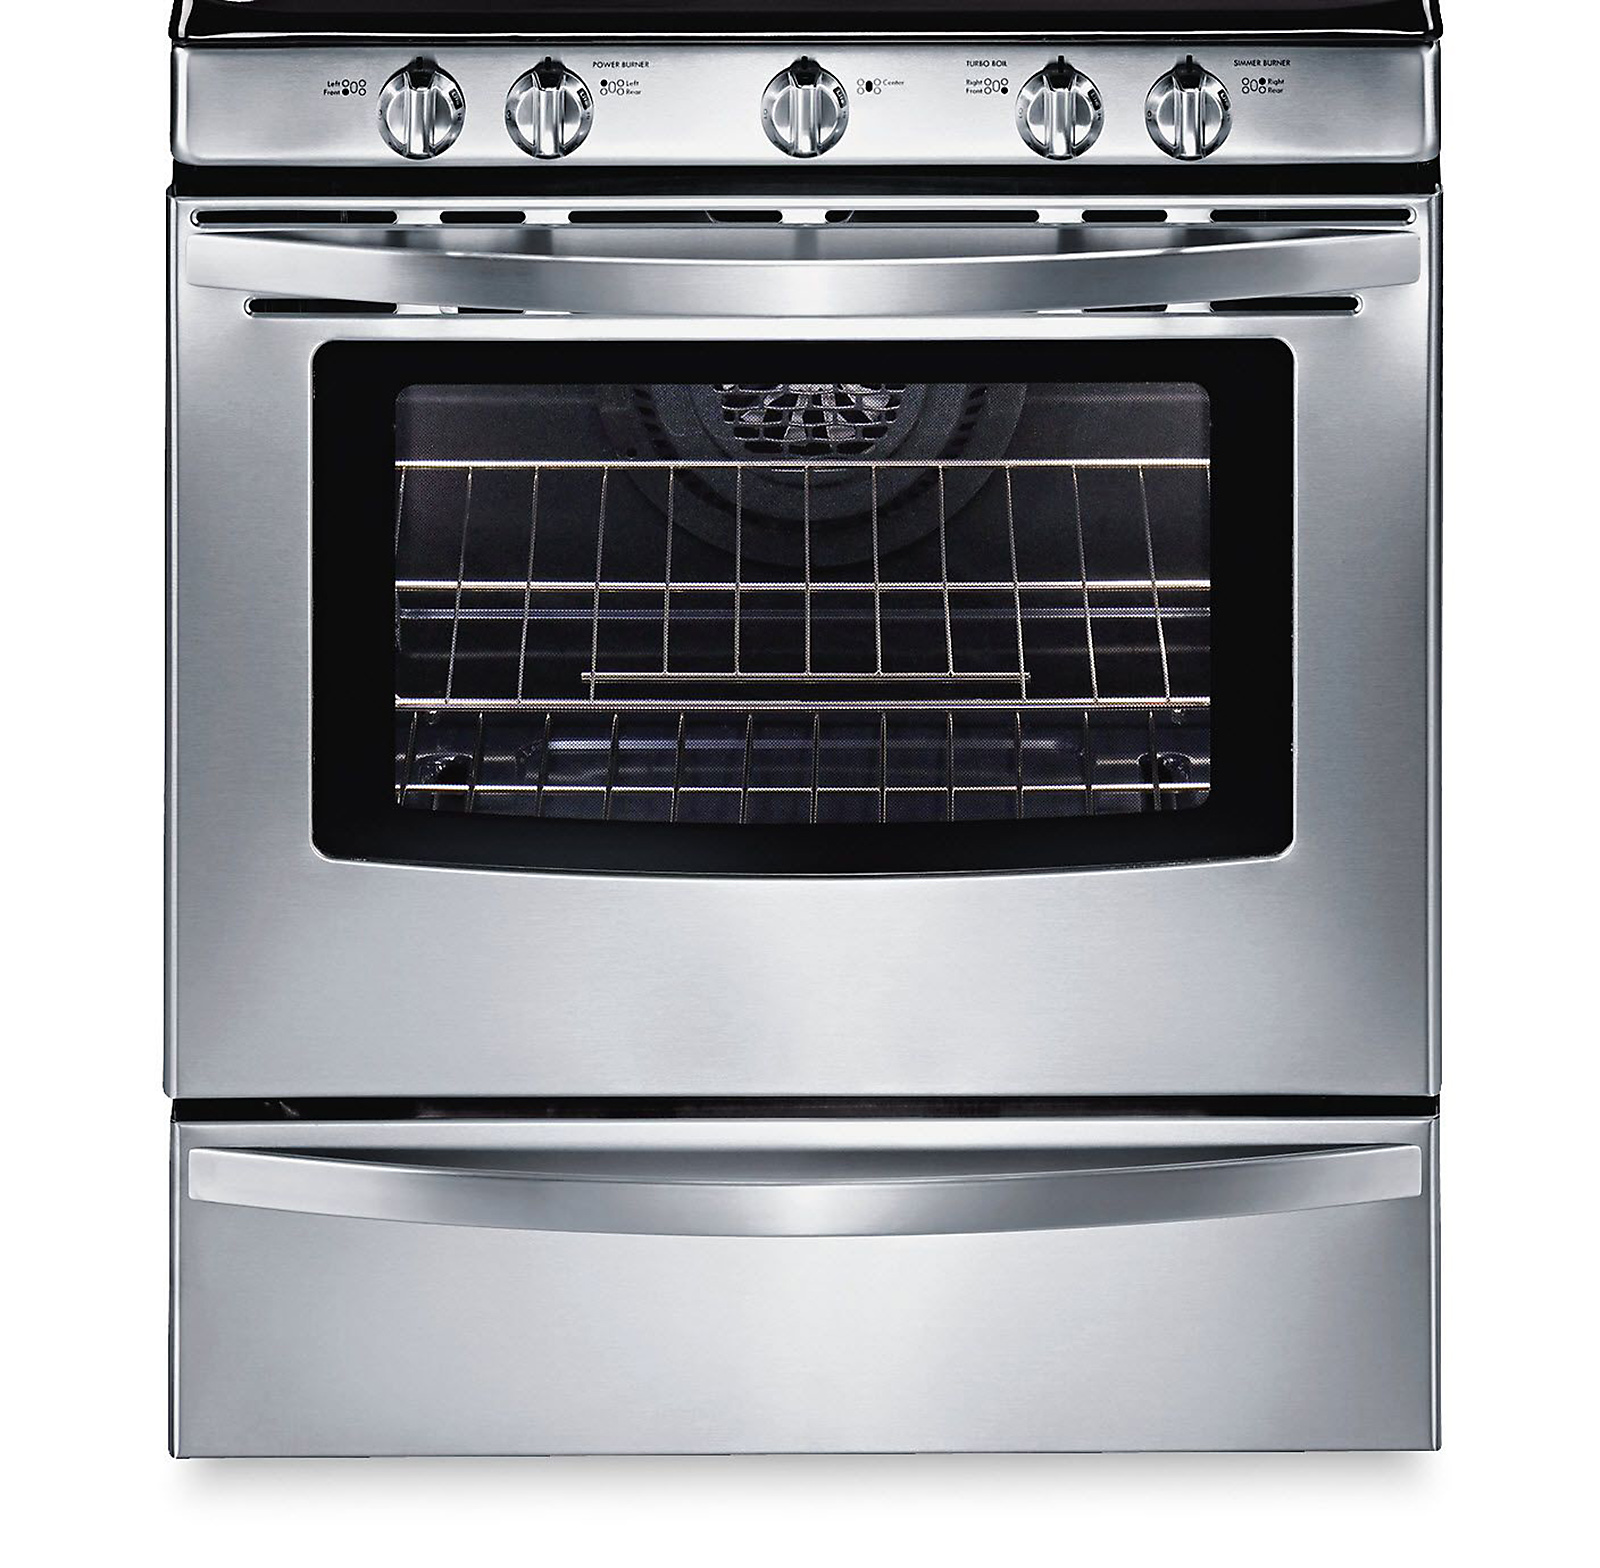 Kenmore 5.0 cu. ft. Freestanding Gas Range w/ Convection